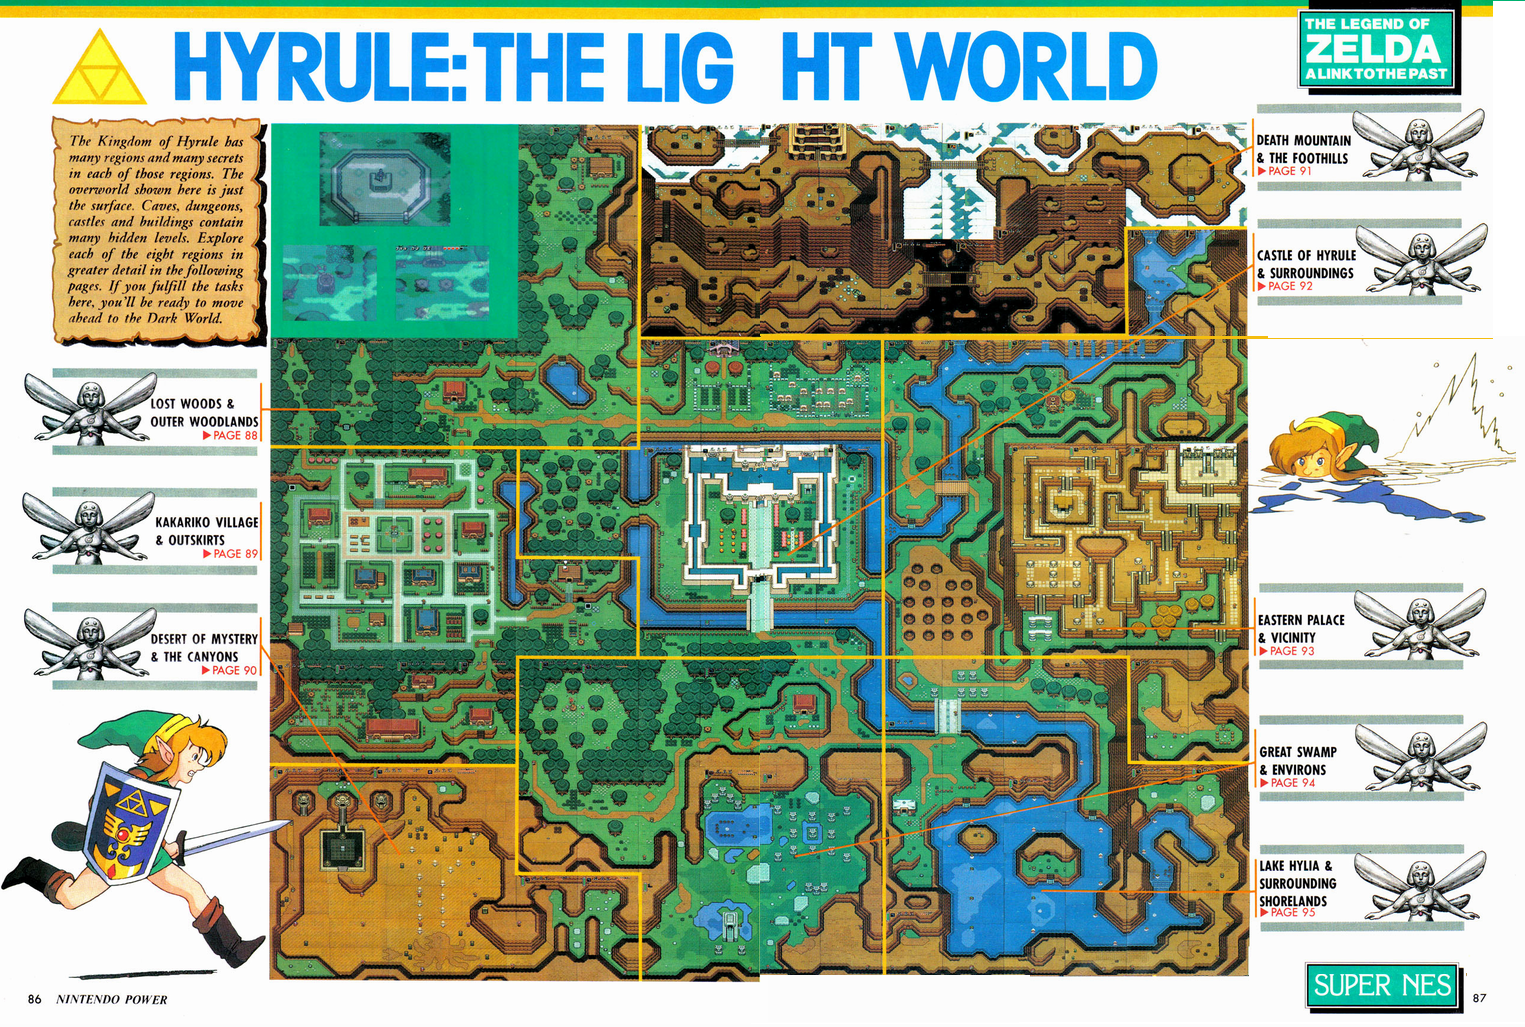 8-Bit City: The Legend of Zelda: <b>Link</b> to the <b>Past Nintendo</b> Power Scans